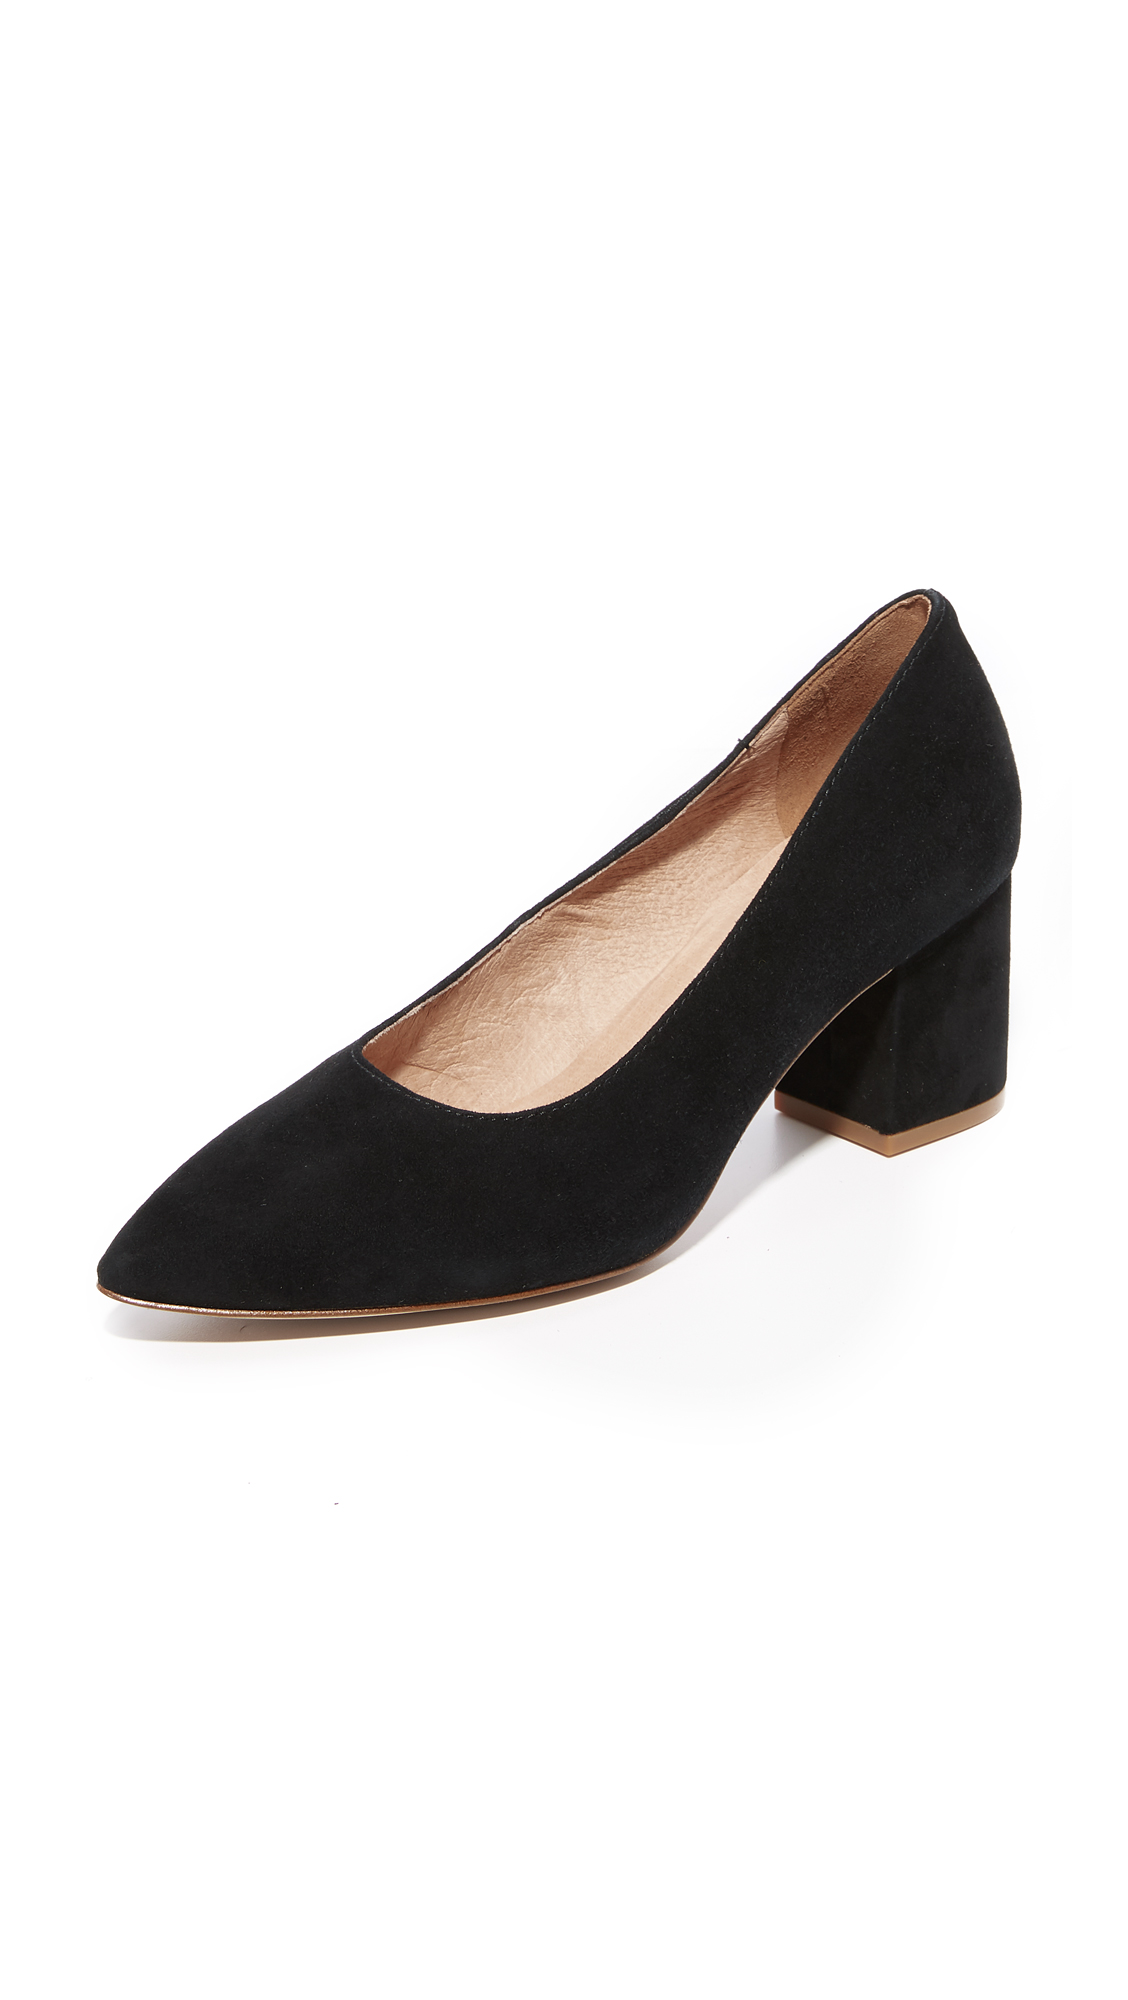 Madewell Rivka Heels - Black Sea